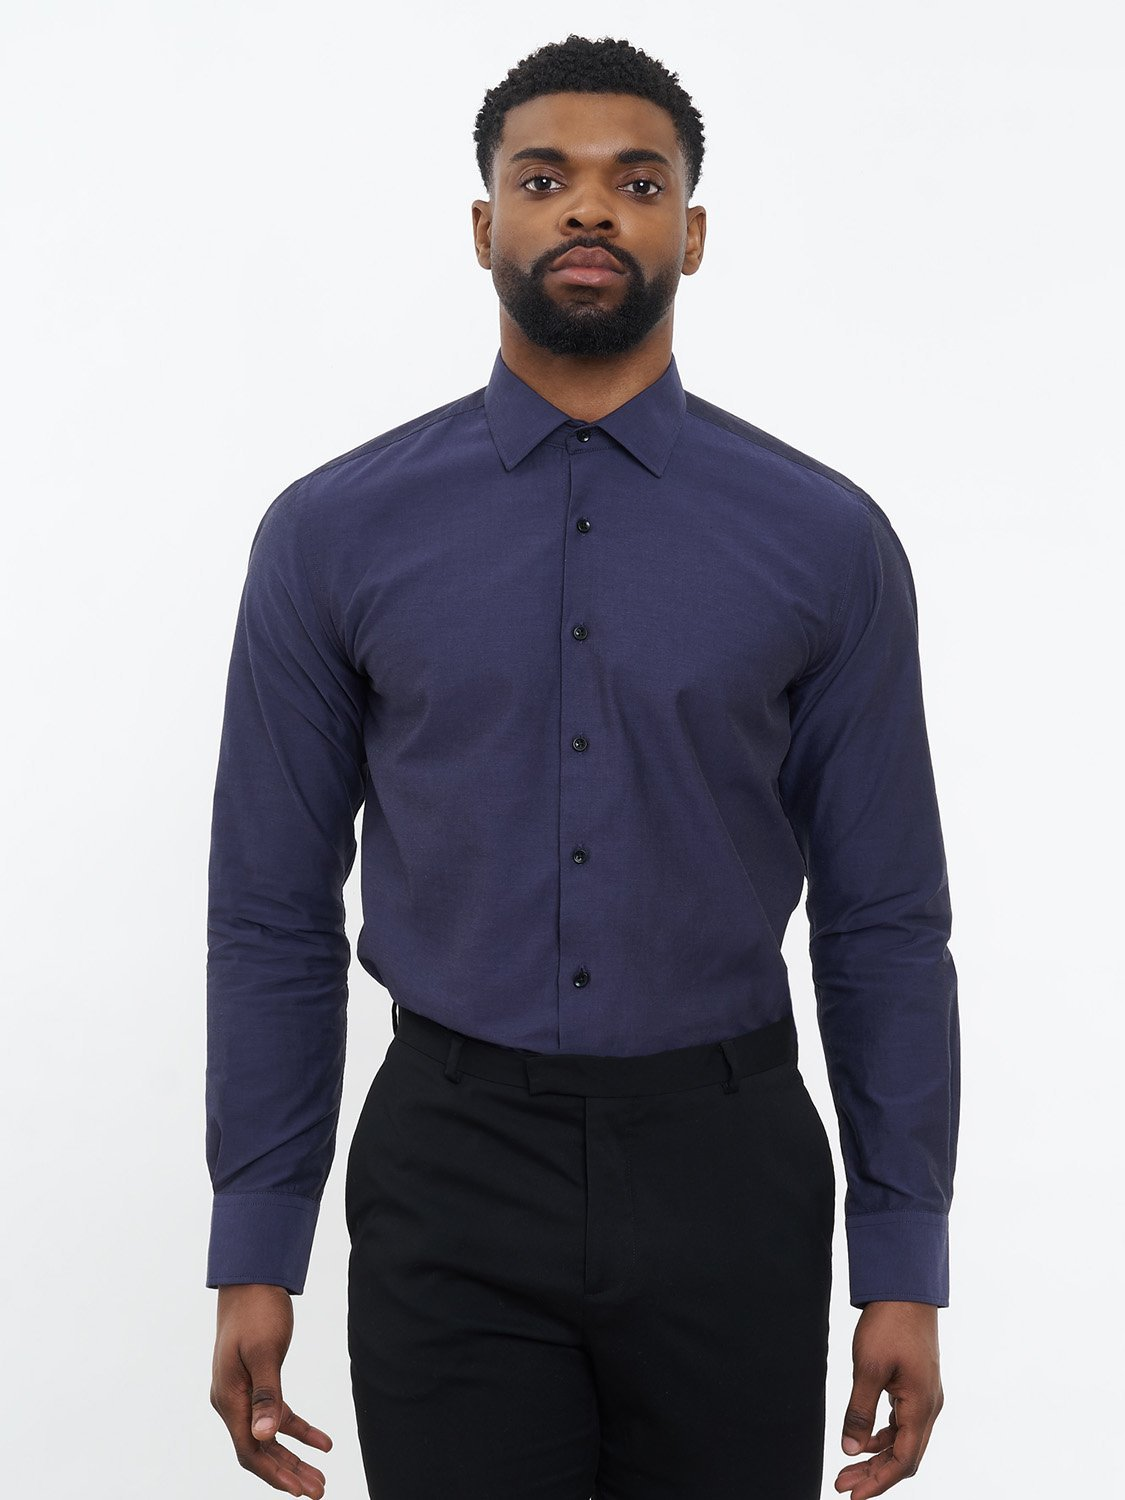 carpasus sustainable organic cotton dress shirt dark blue. Nachhaltiges Carpasus Businesshemd aus Bio Baumwolle in Dunkelblau